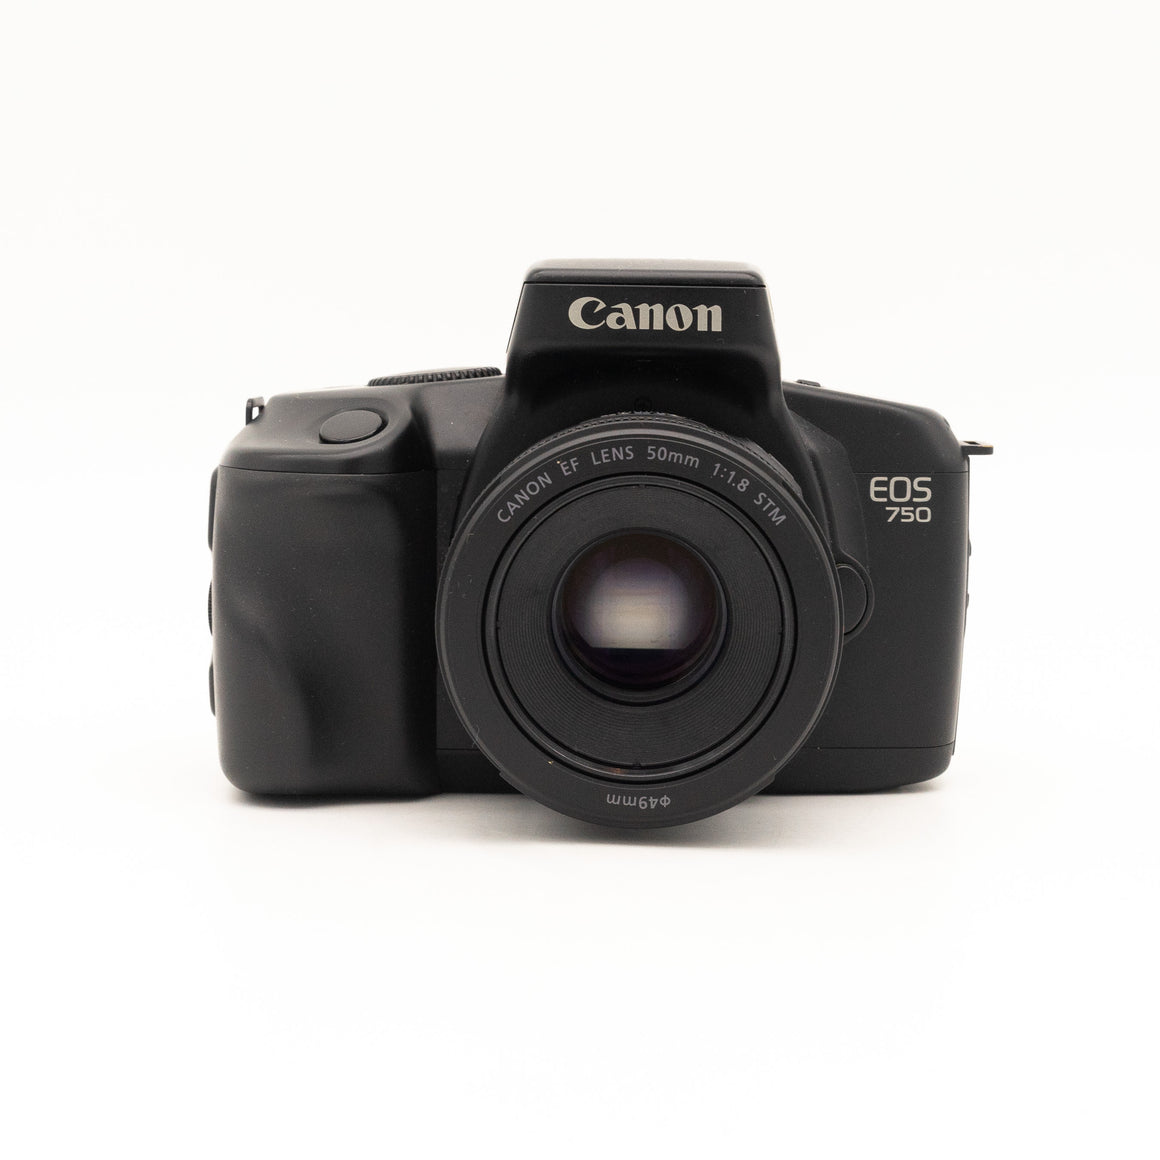 Canon EOS 750 SLR with Canon EF 50mm f/1.8 STM Lens Kit